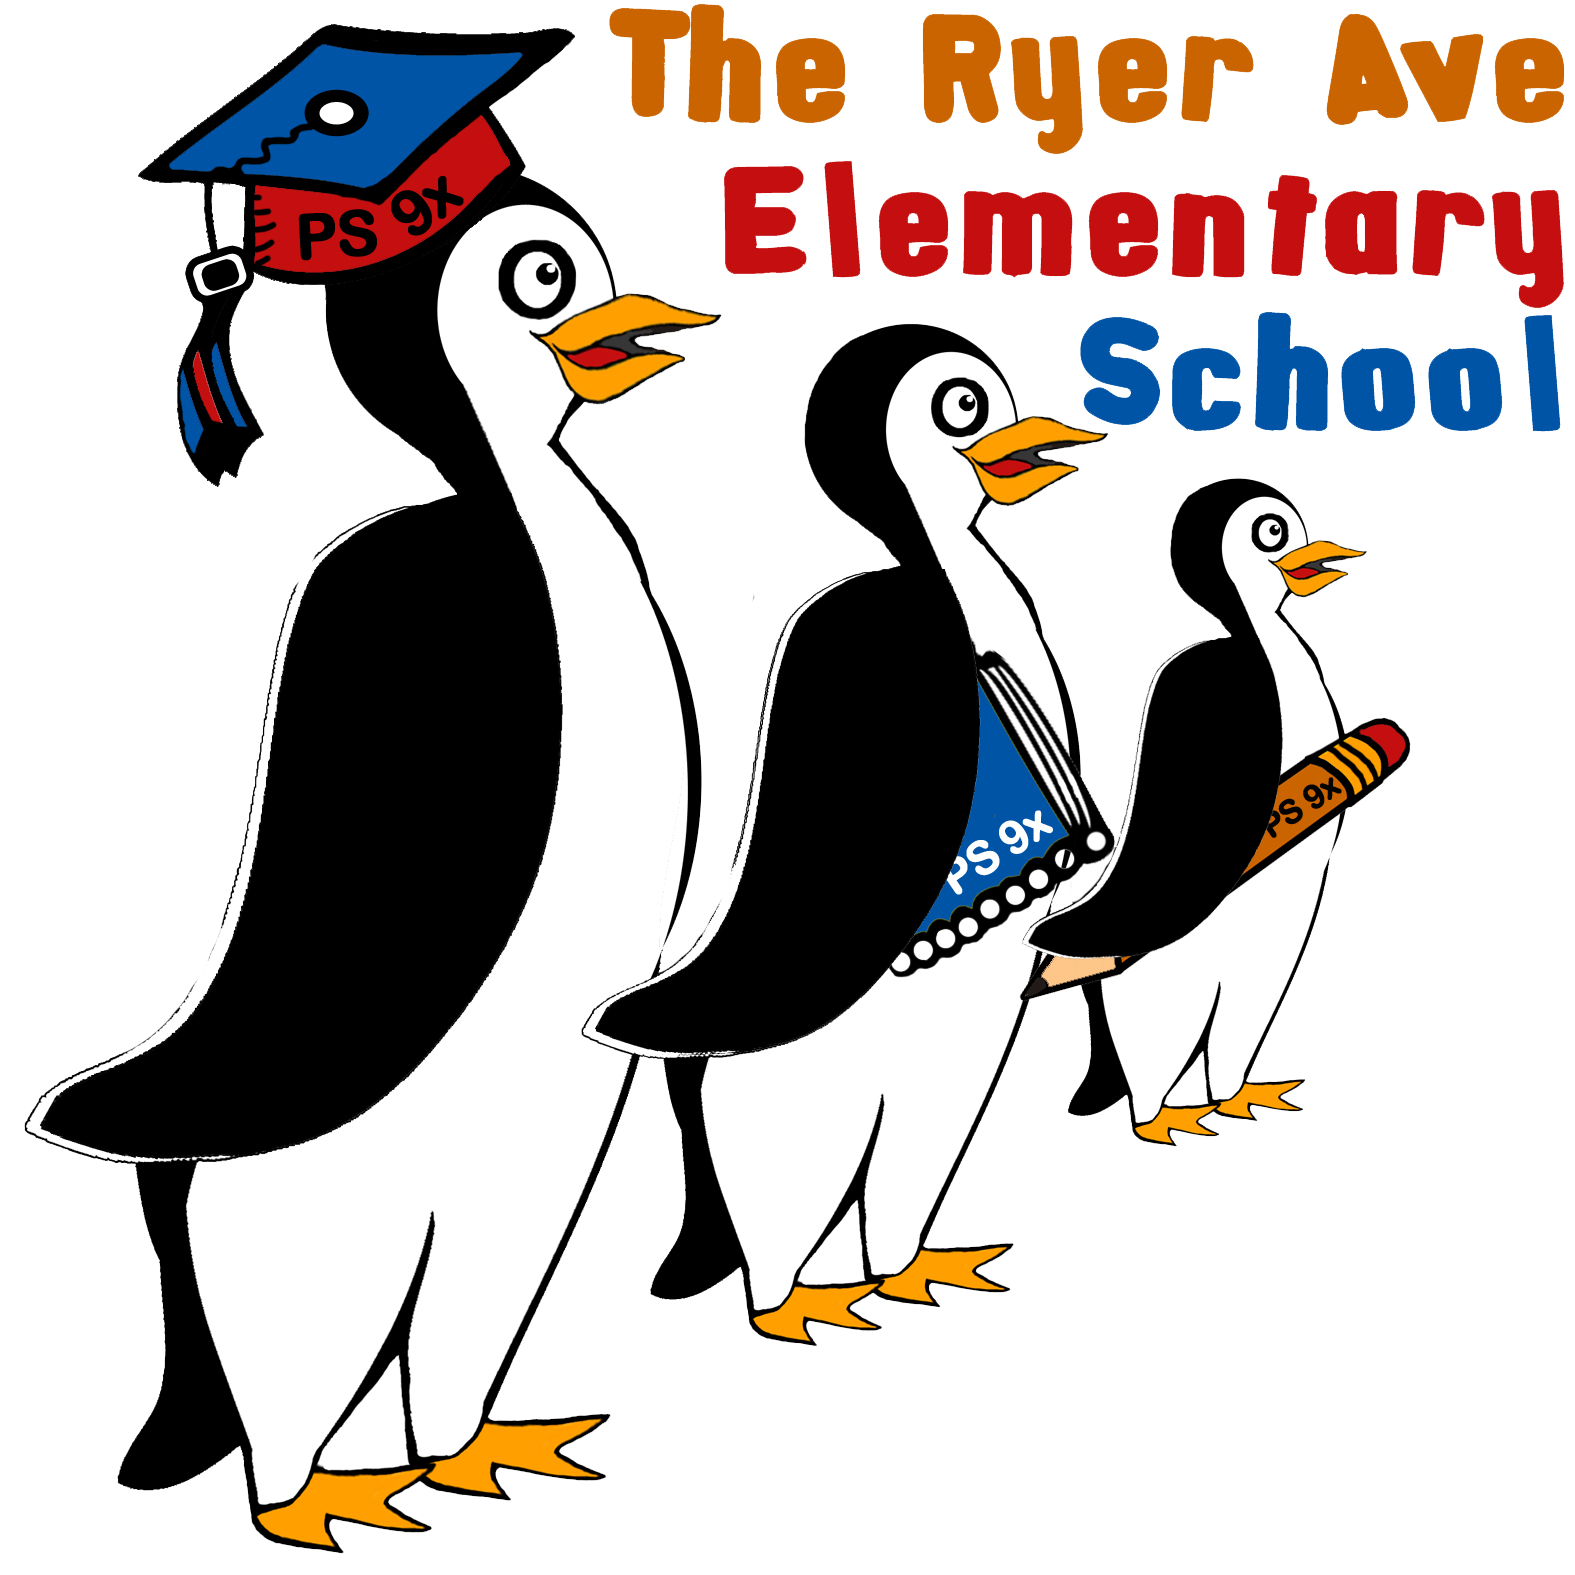 PS 9 Ryer Avenue Elementary School Home Page